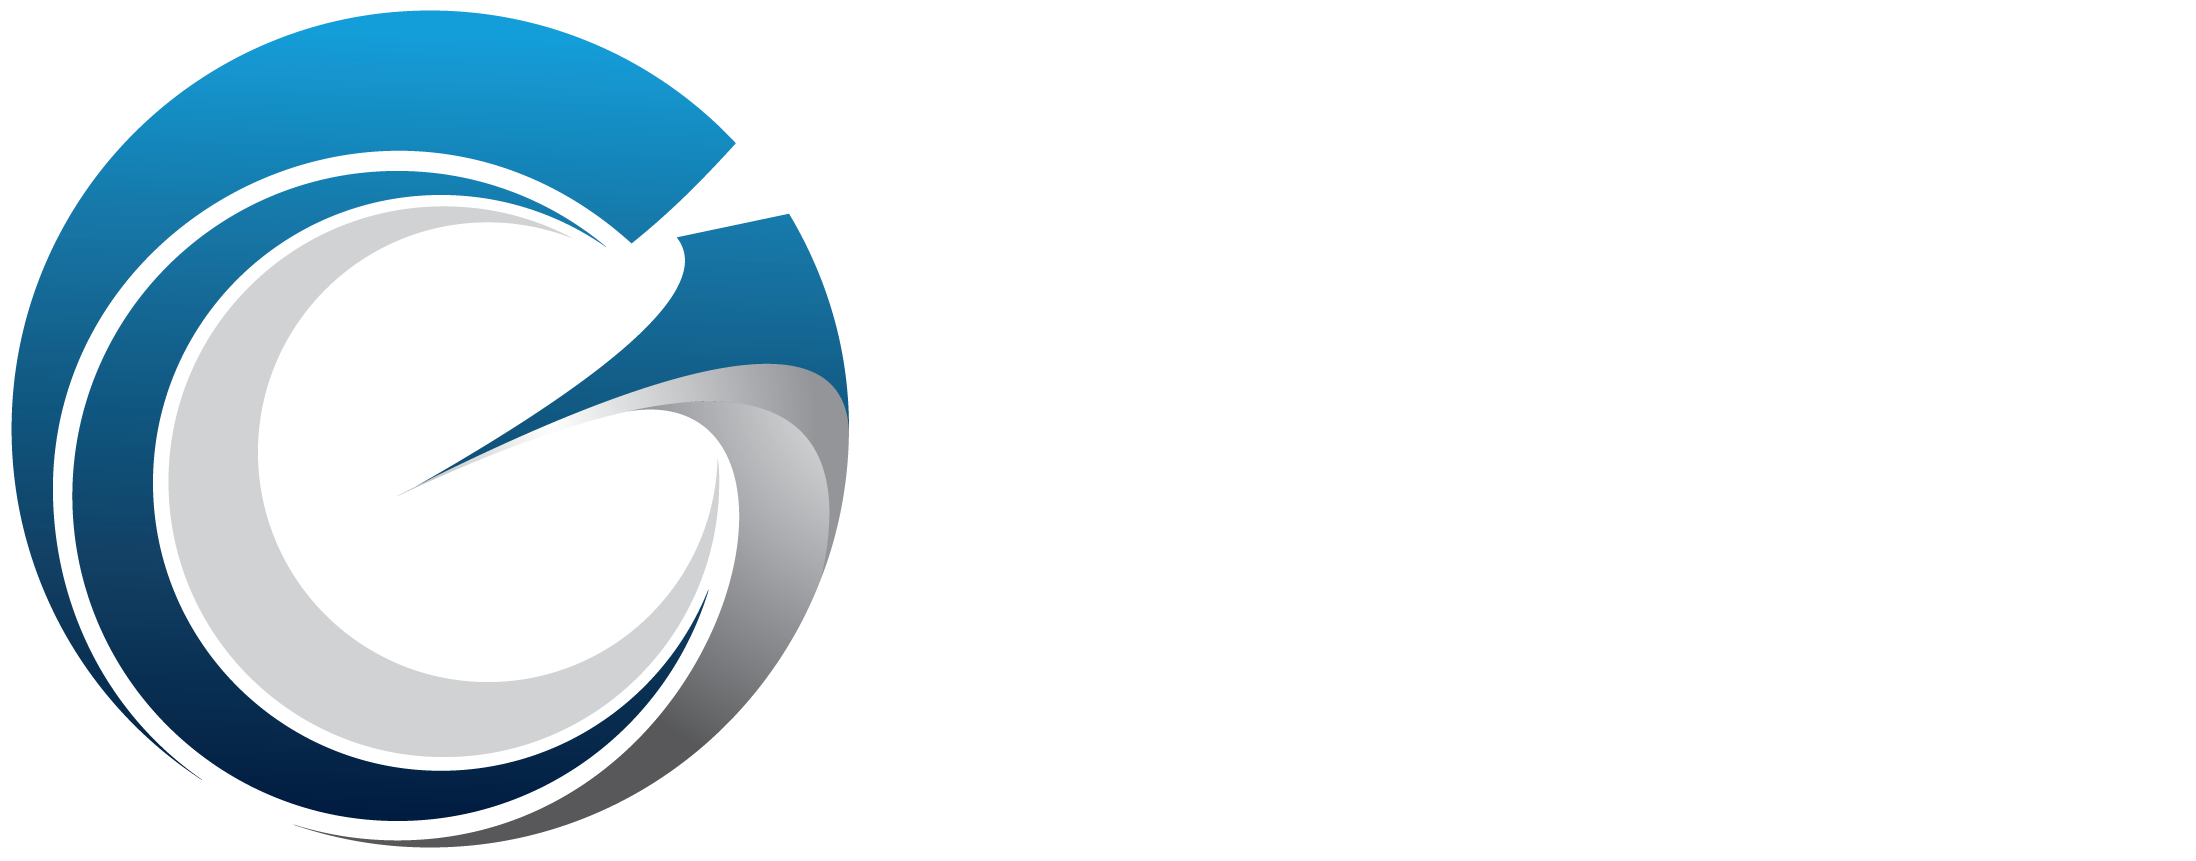 Group-Elite-logo-2020-upper%20left%20web